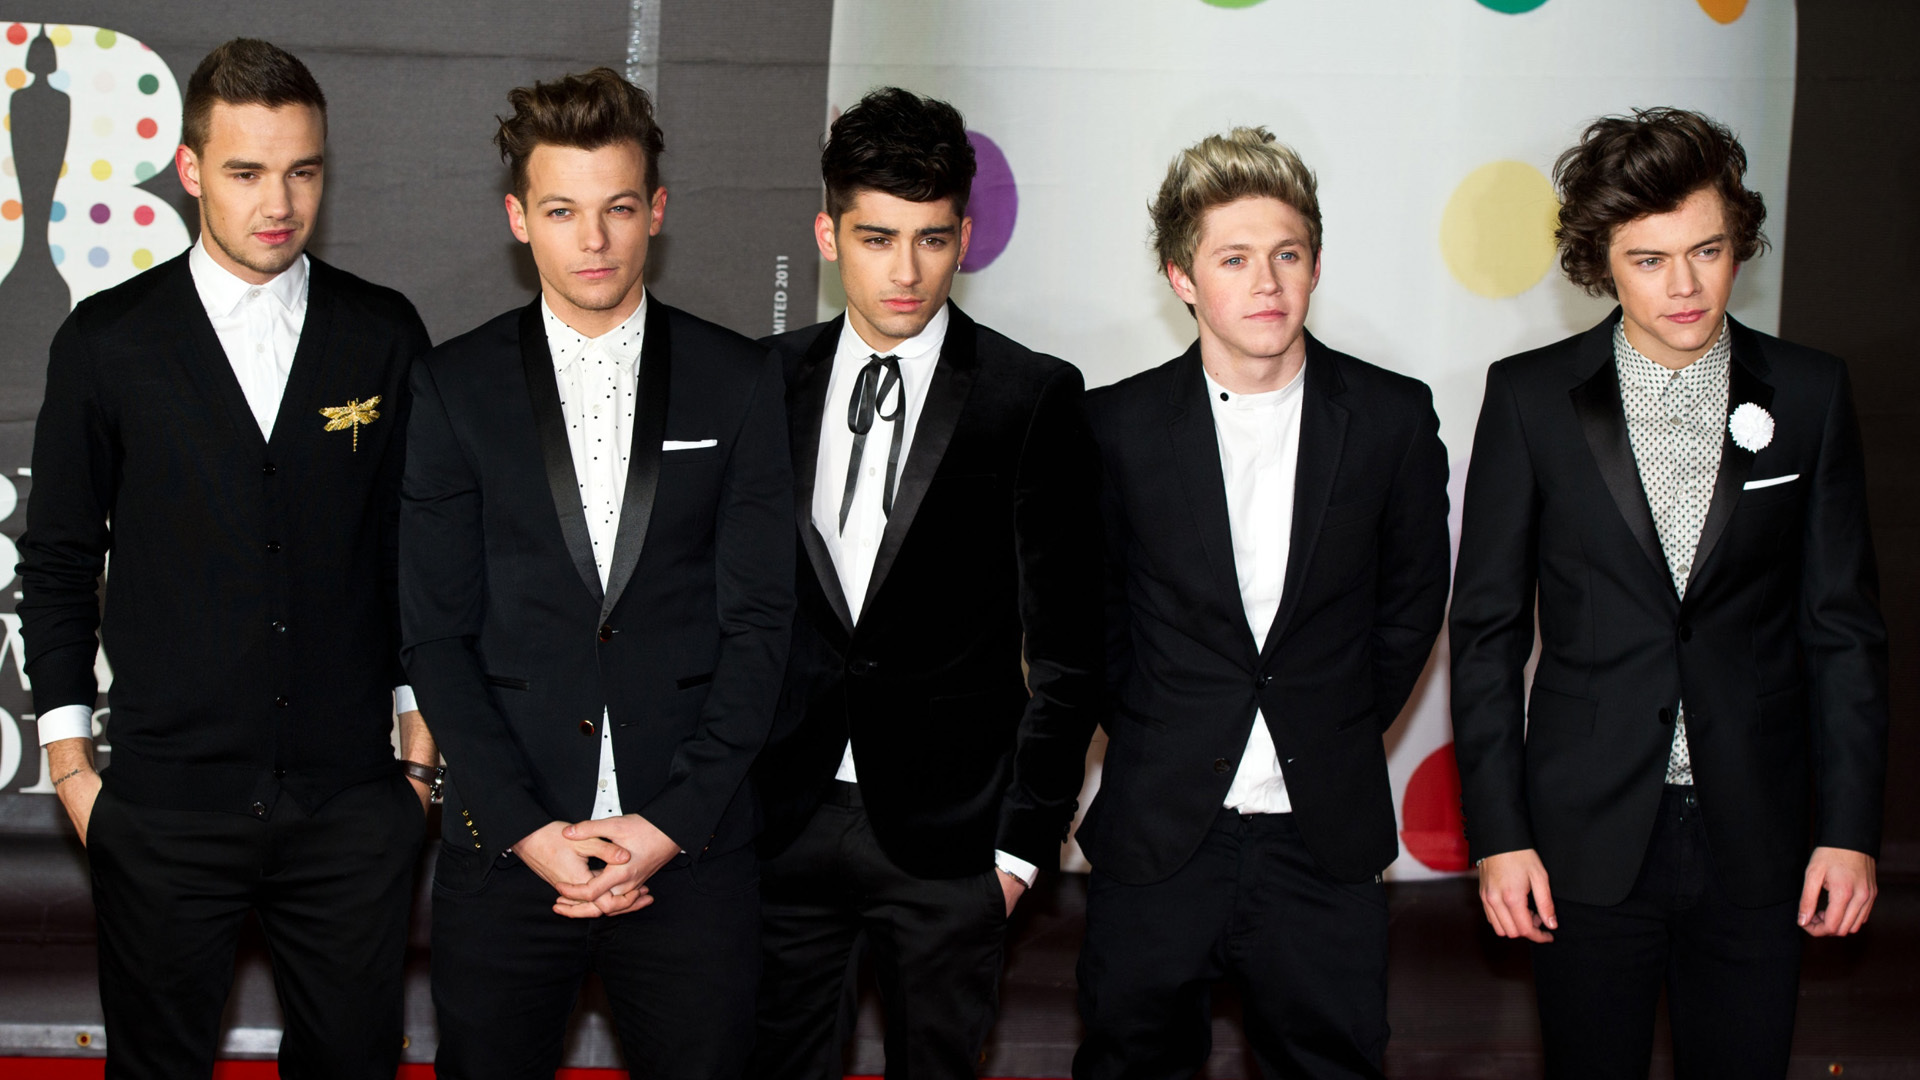 one direction One direction performing in glasgow on their on the road again tour, october 2015from left to right: louis tomlinson, niall horan, liam payne and harry styles.